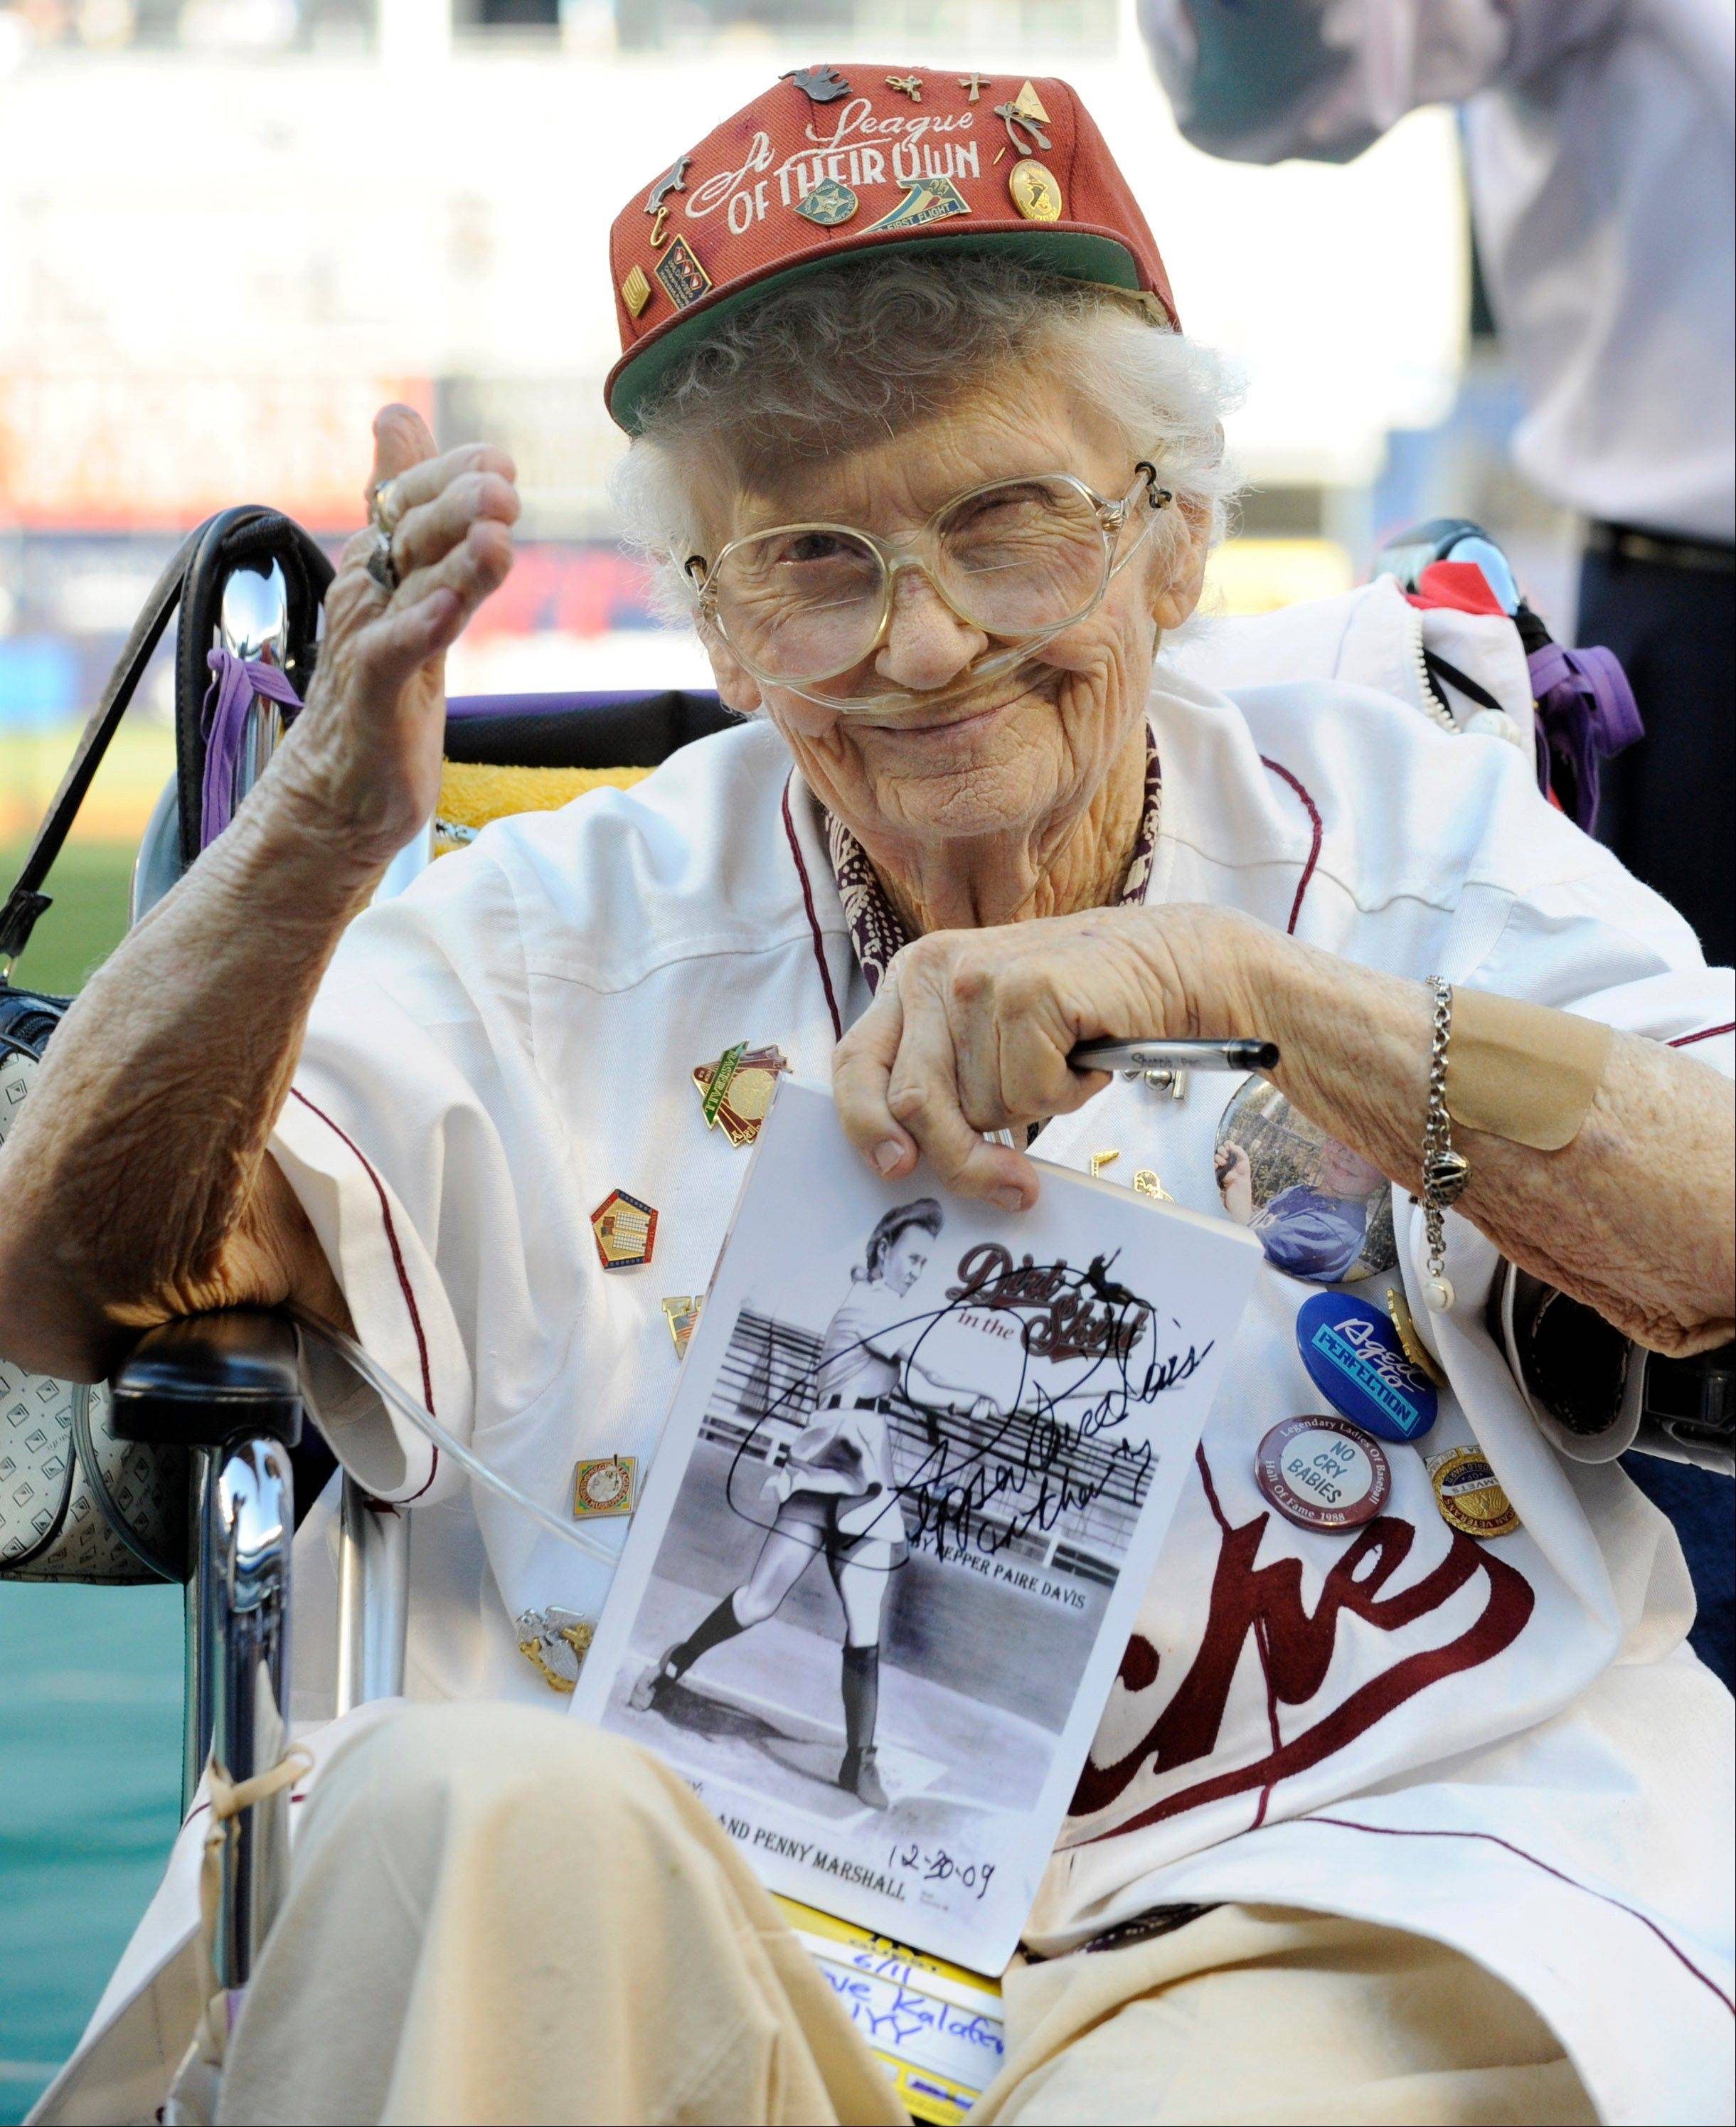 Lavonne �Pepper� Paire-Davis, seen here in a file photo taken in 2010, was a star of the All American Girls Professional Baseball League in the 1940s and an inspiration for the movie �A League of Their Own.� She died Saturday in Southern California. She was 88.